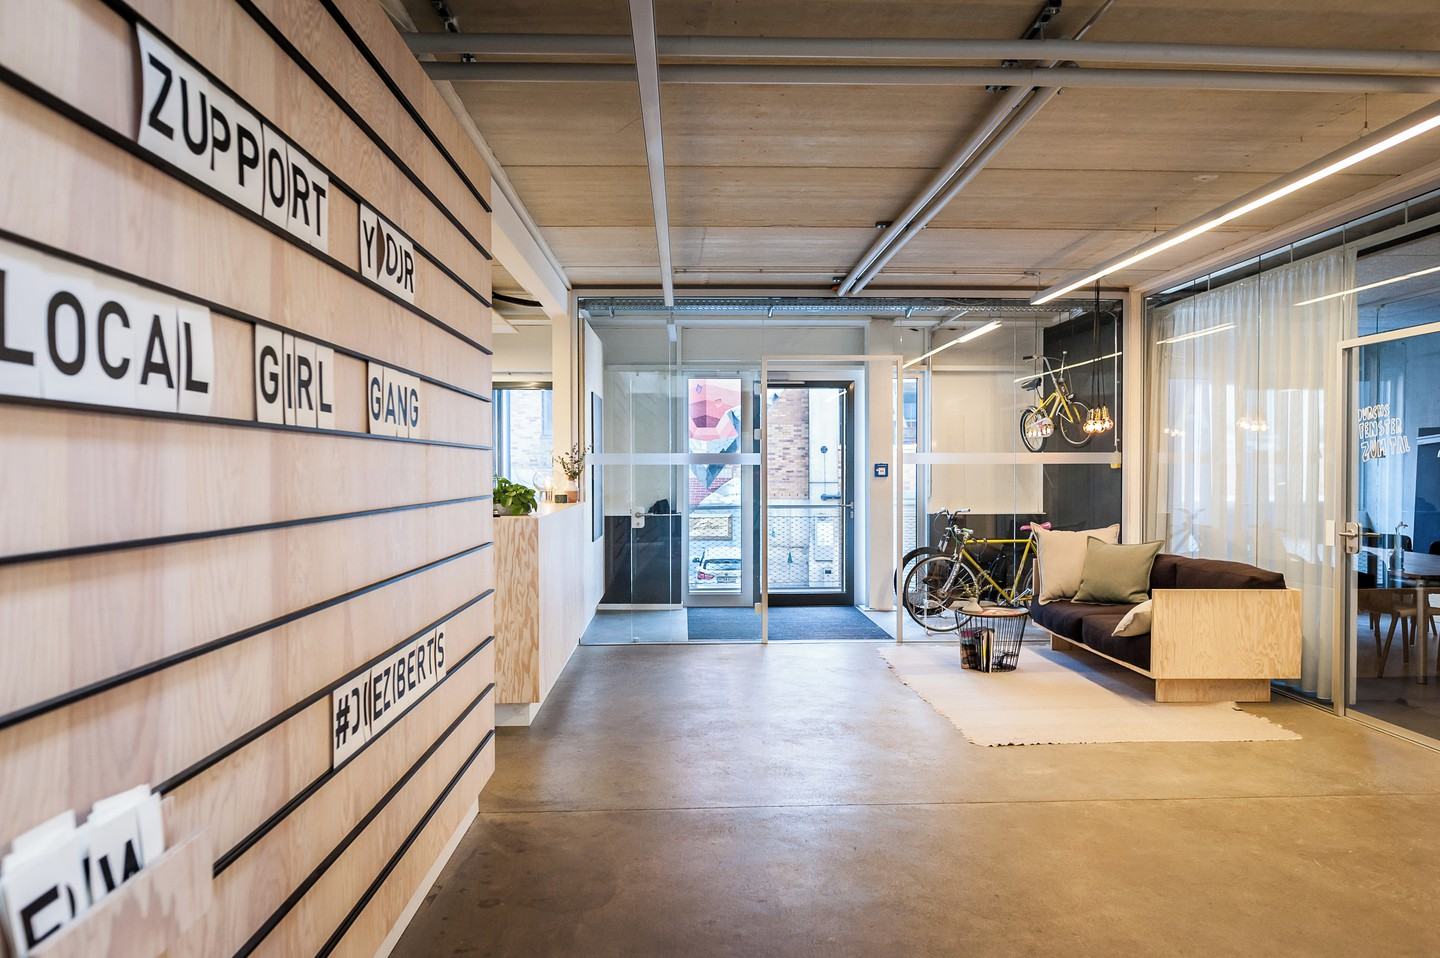 Munich conference rooms Unusual CORVATSCH  - Loft Location & Creative Space image 0